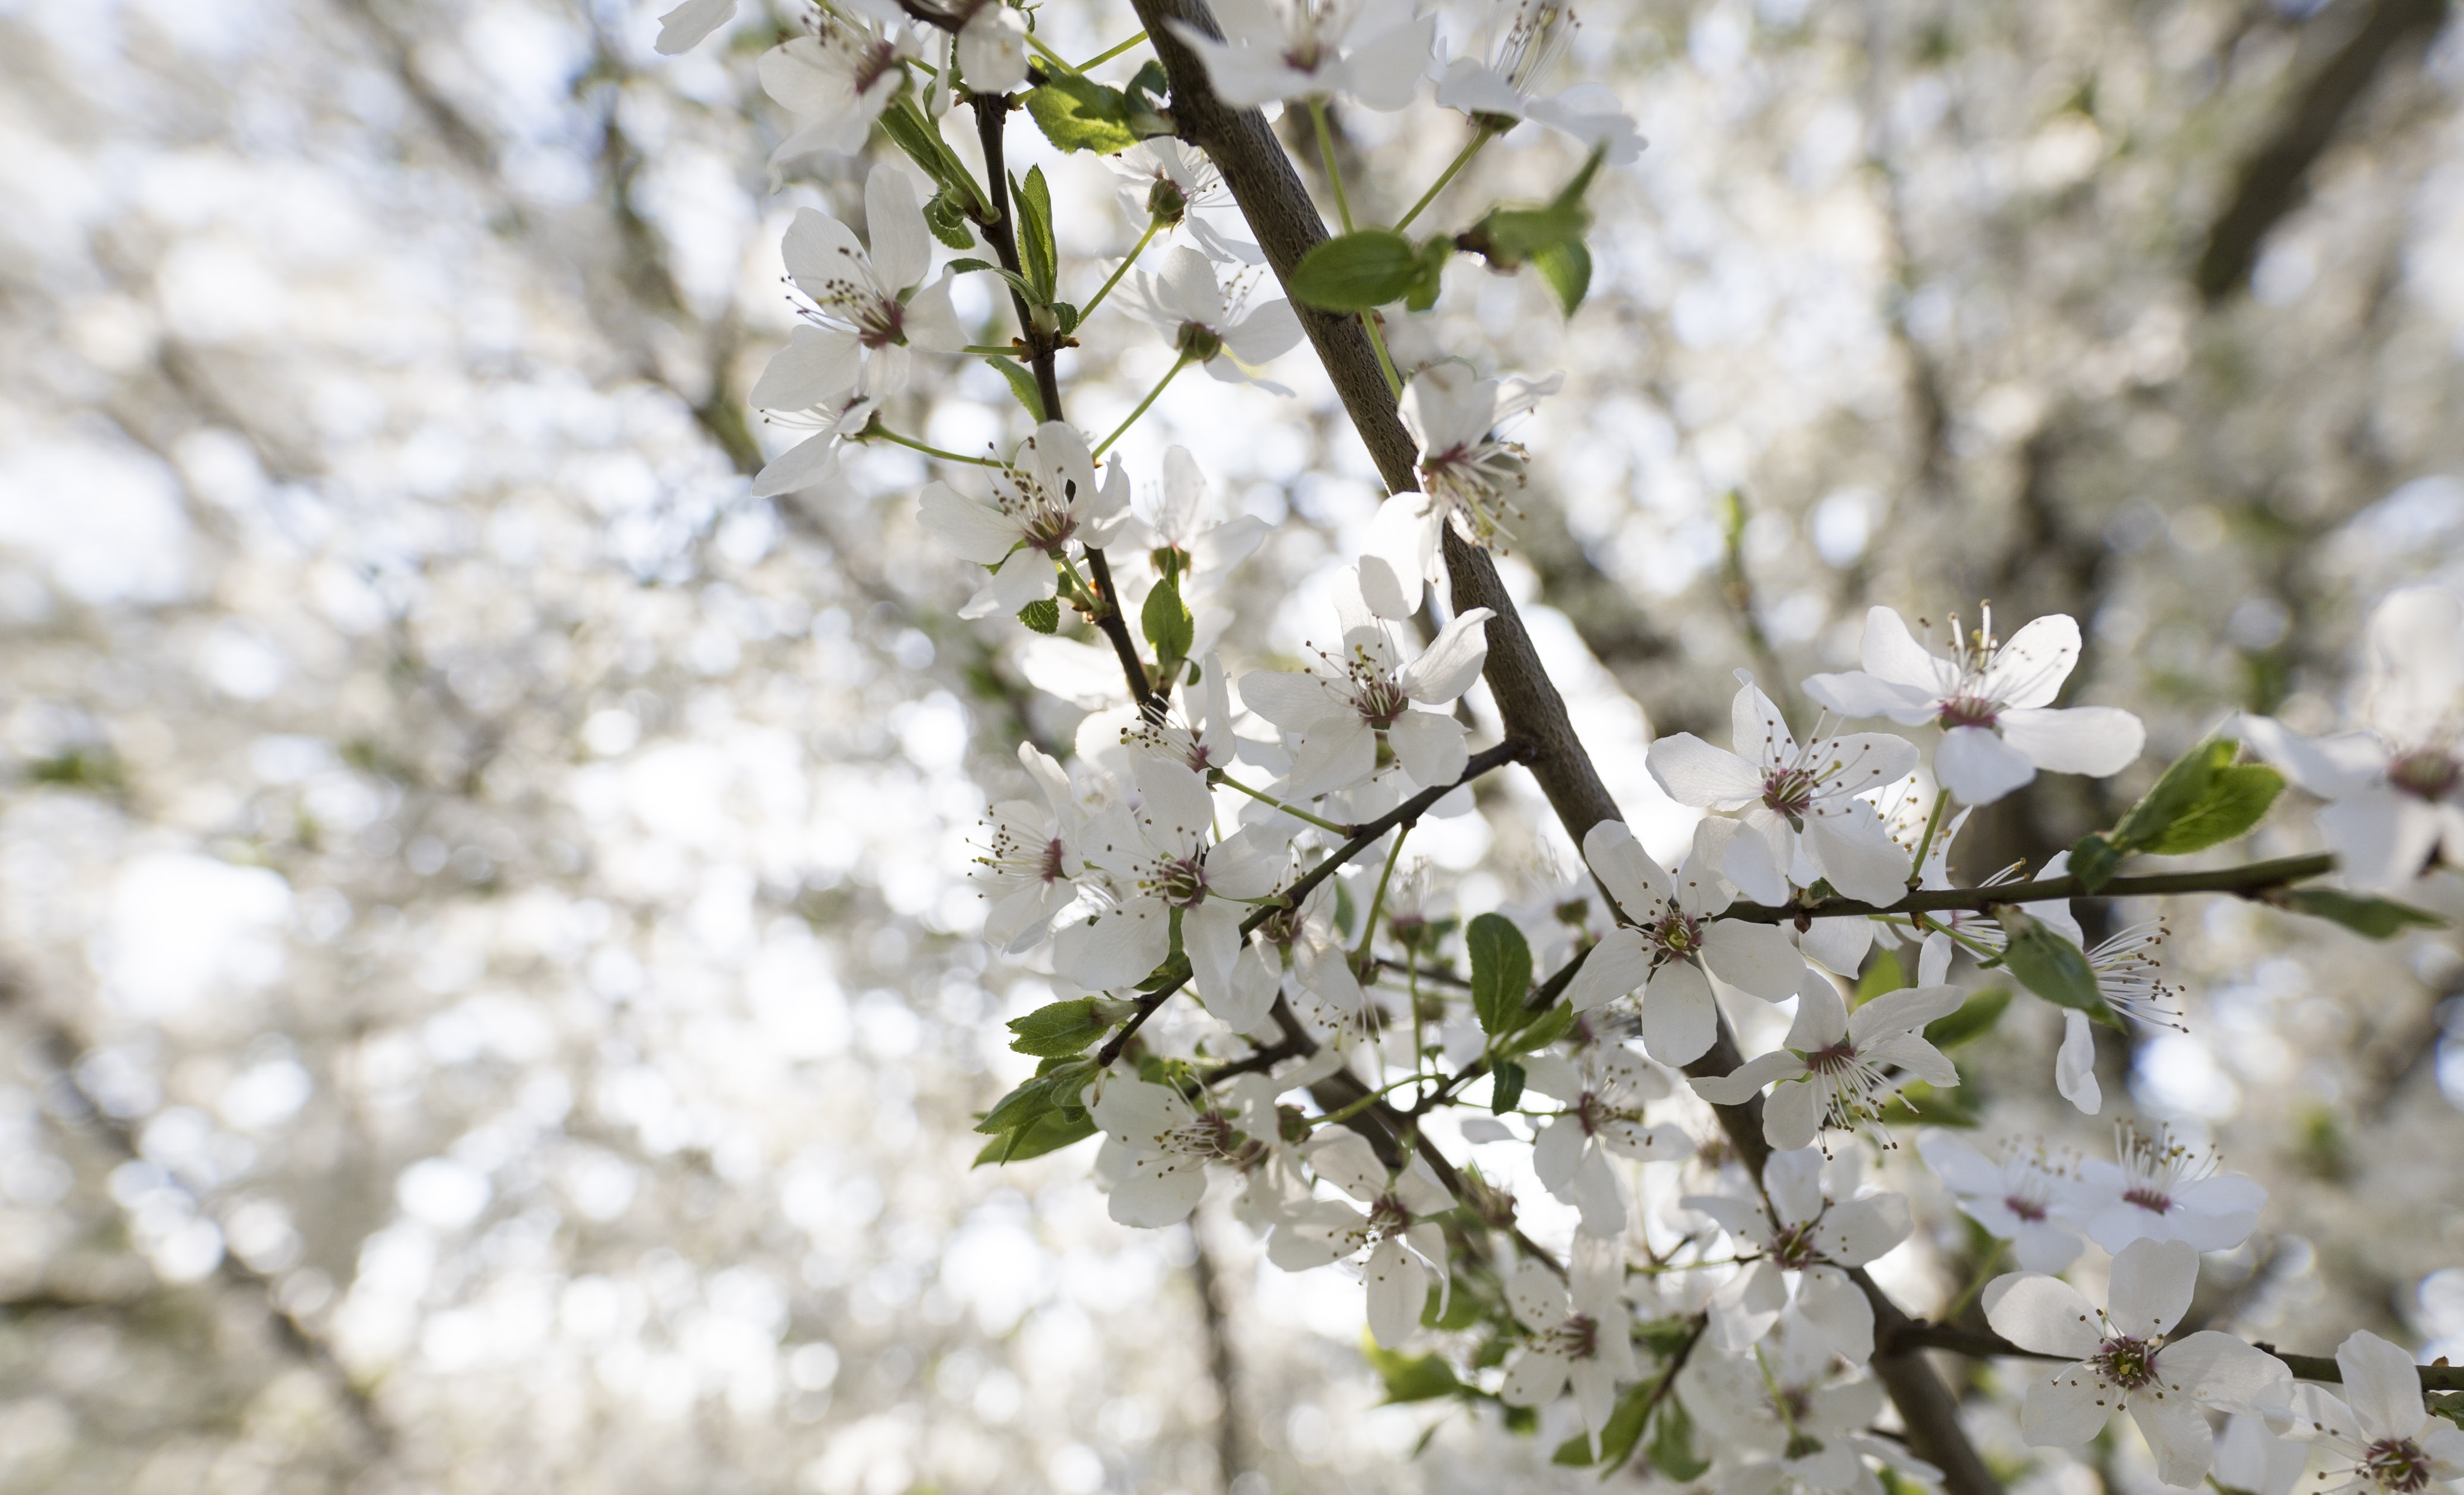 White blossom branch and green leaves in Spring